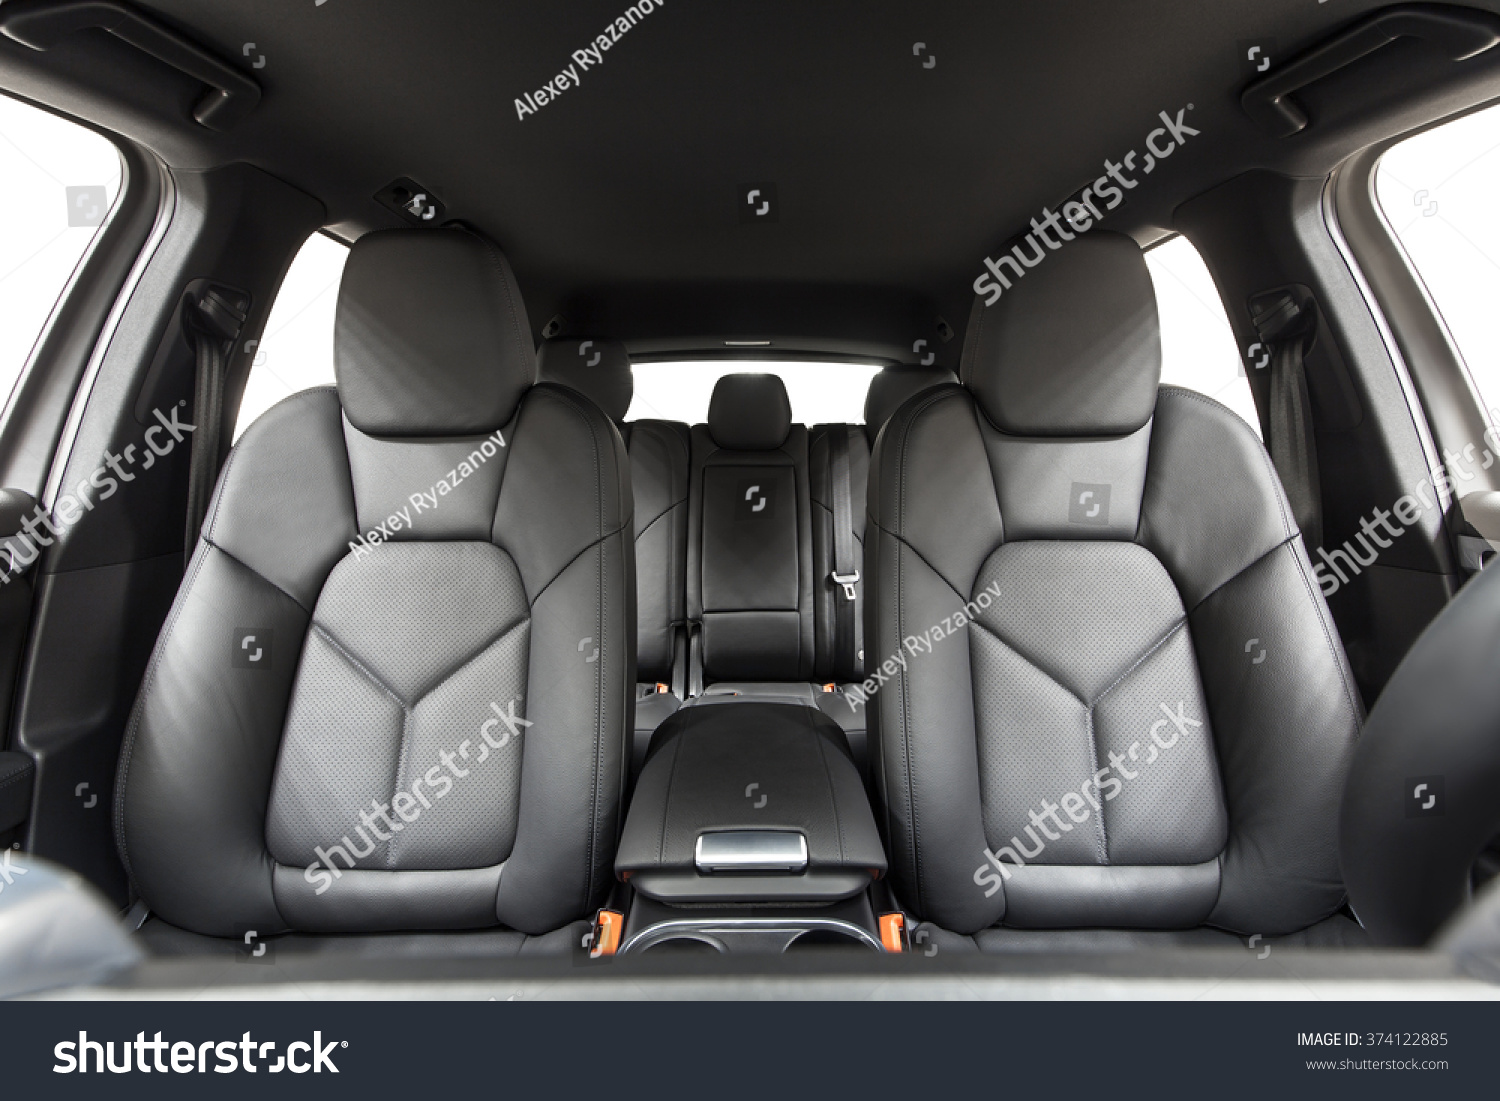 car inside interior prestige modern car stock photo 374122885 shutterstock. Black Bedroom Furniture Sets. Home Design Ideas